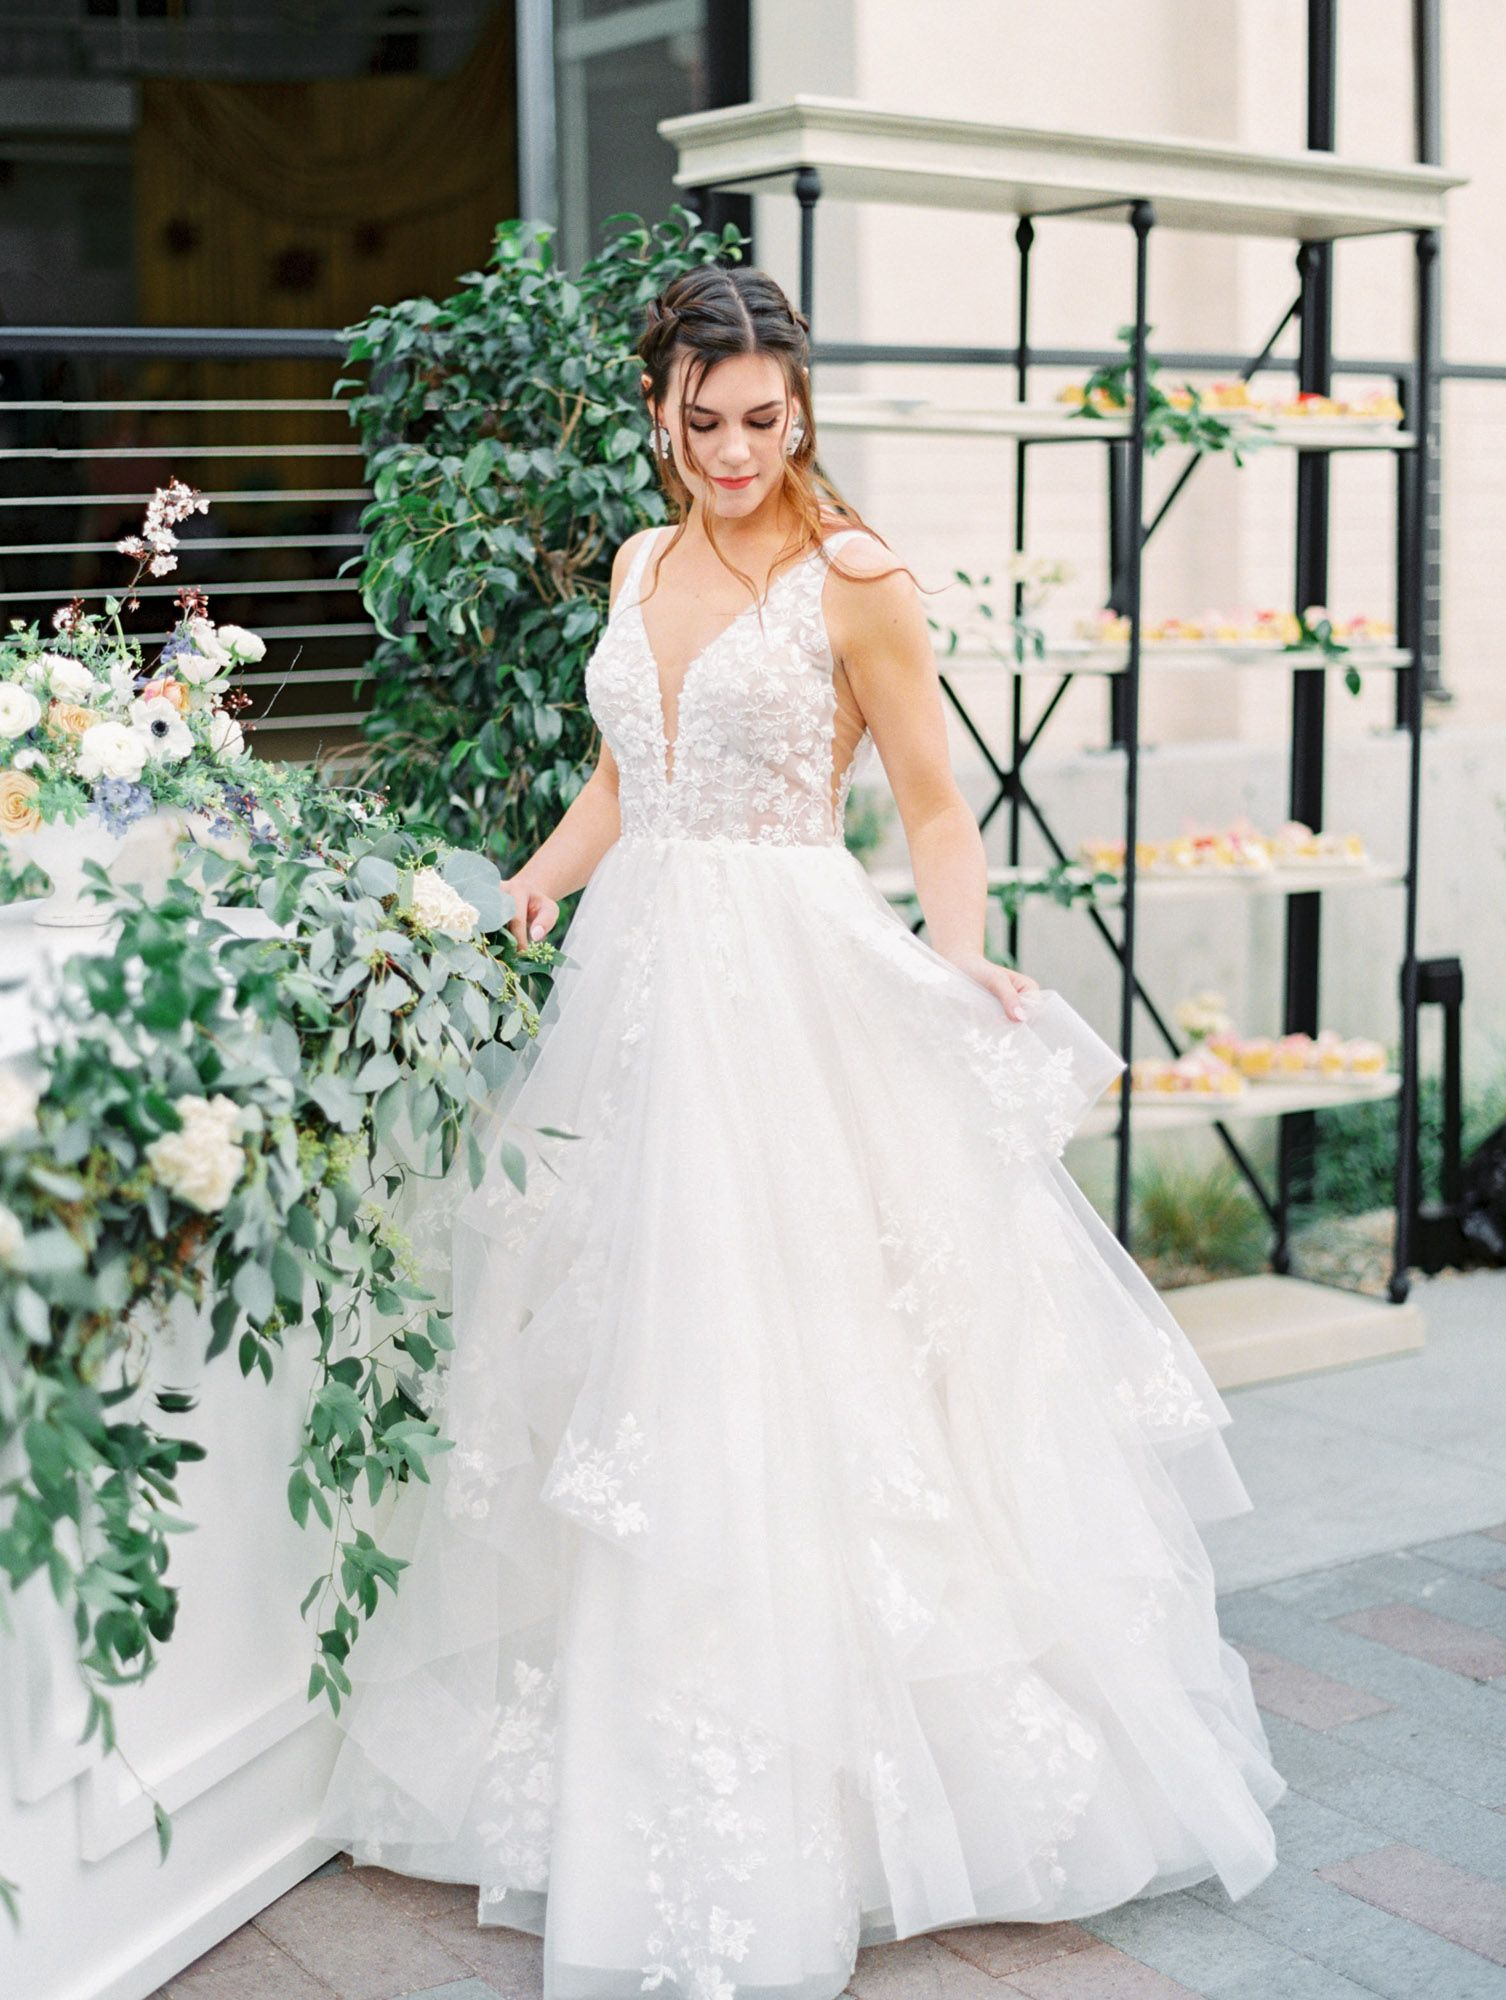 Wedding Dress At Here Comes The Bride In San Diego California Beautiful Wedding Dresses And Bridal Gow Boho Chic Wedding Dress Bridal Dresses Wedding Dresses